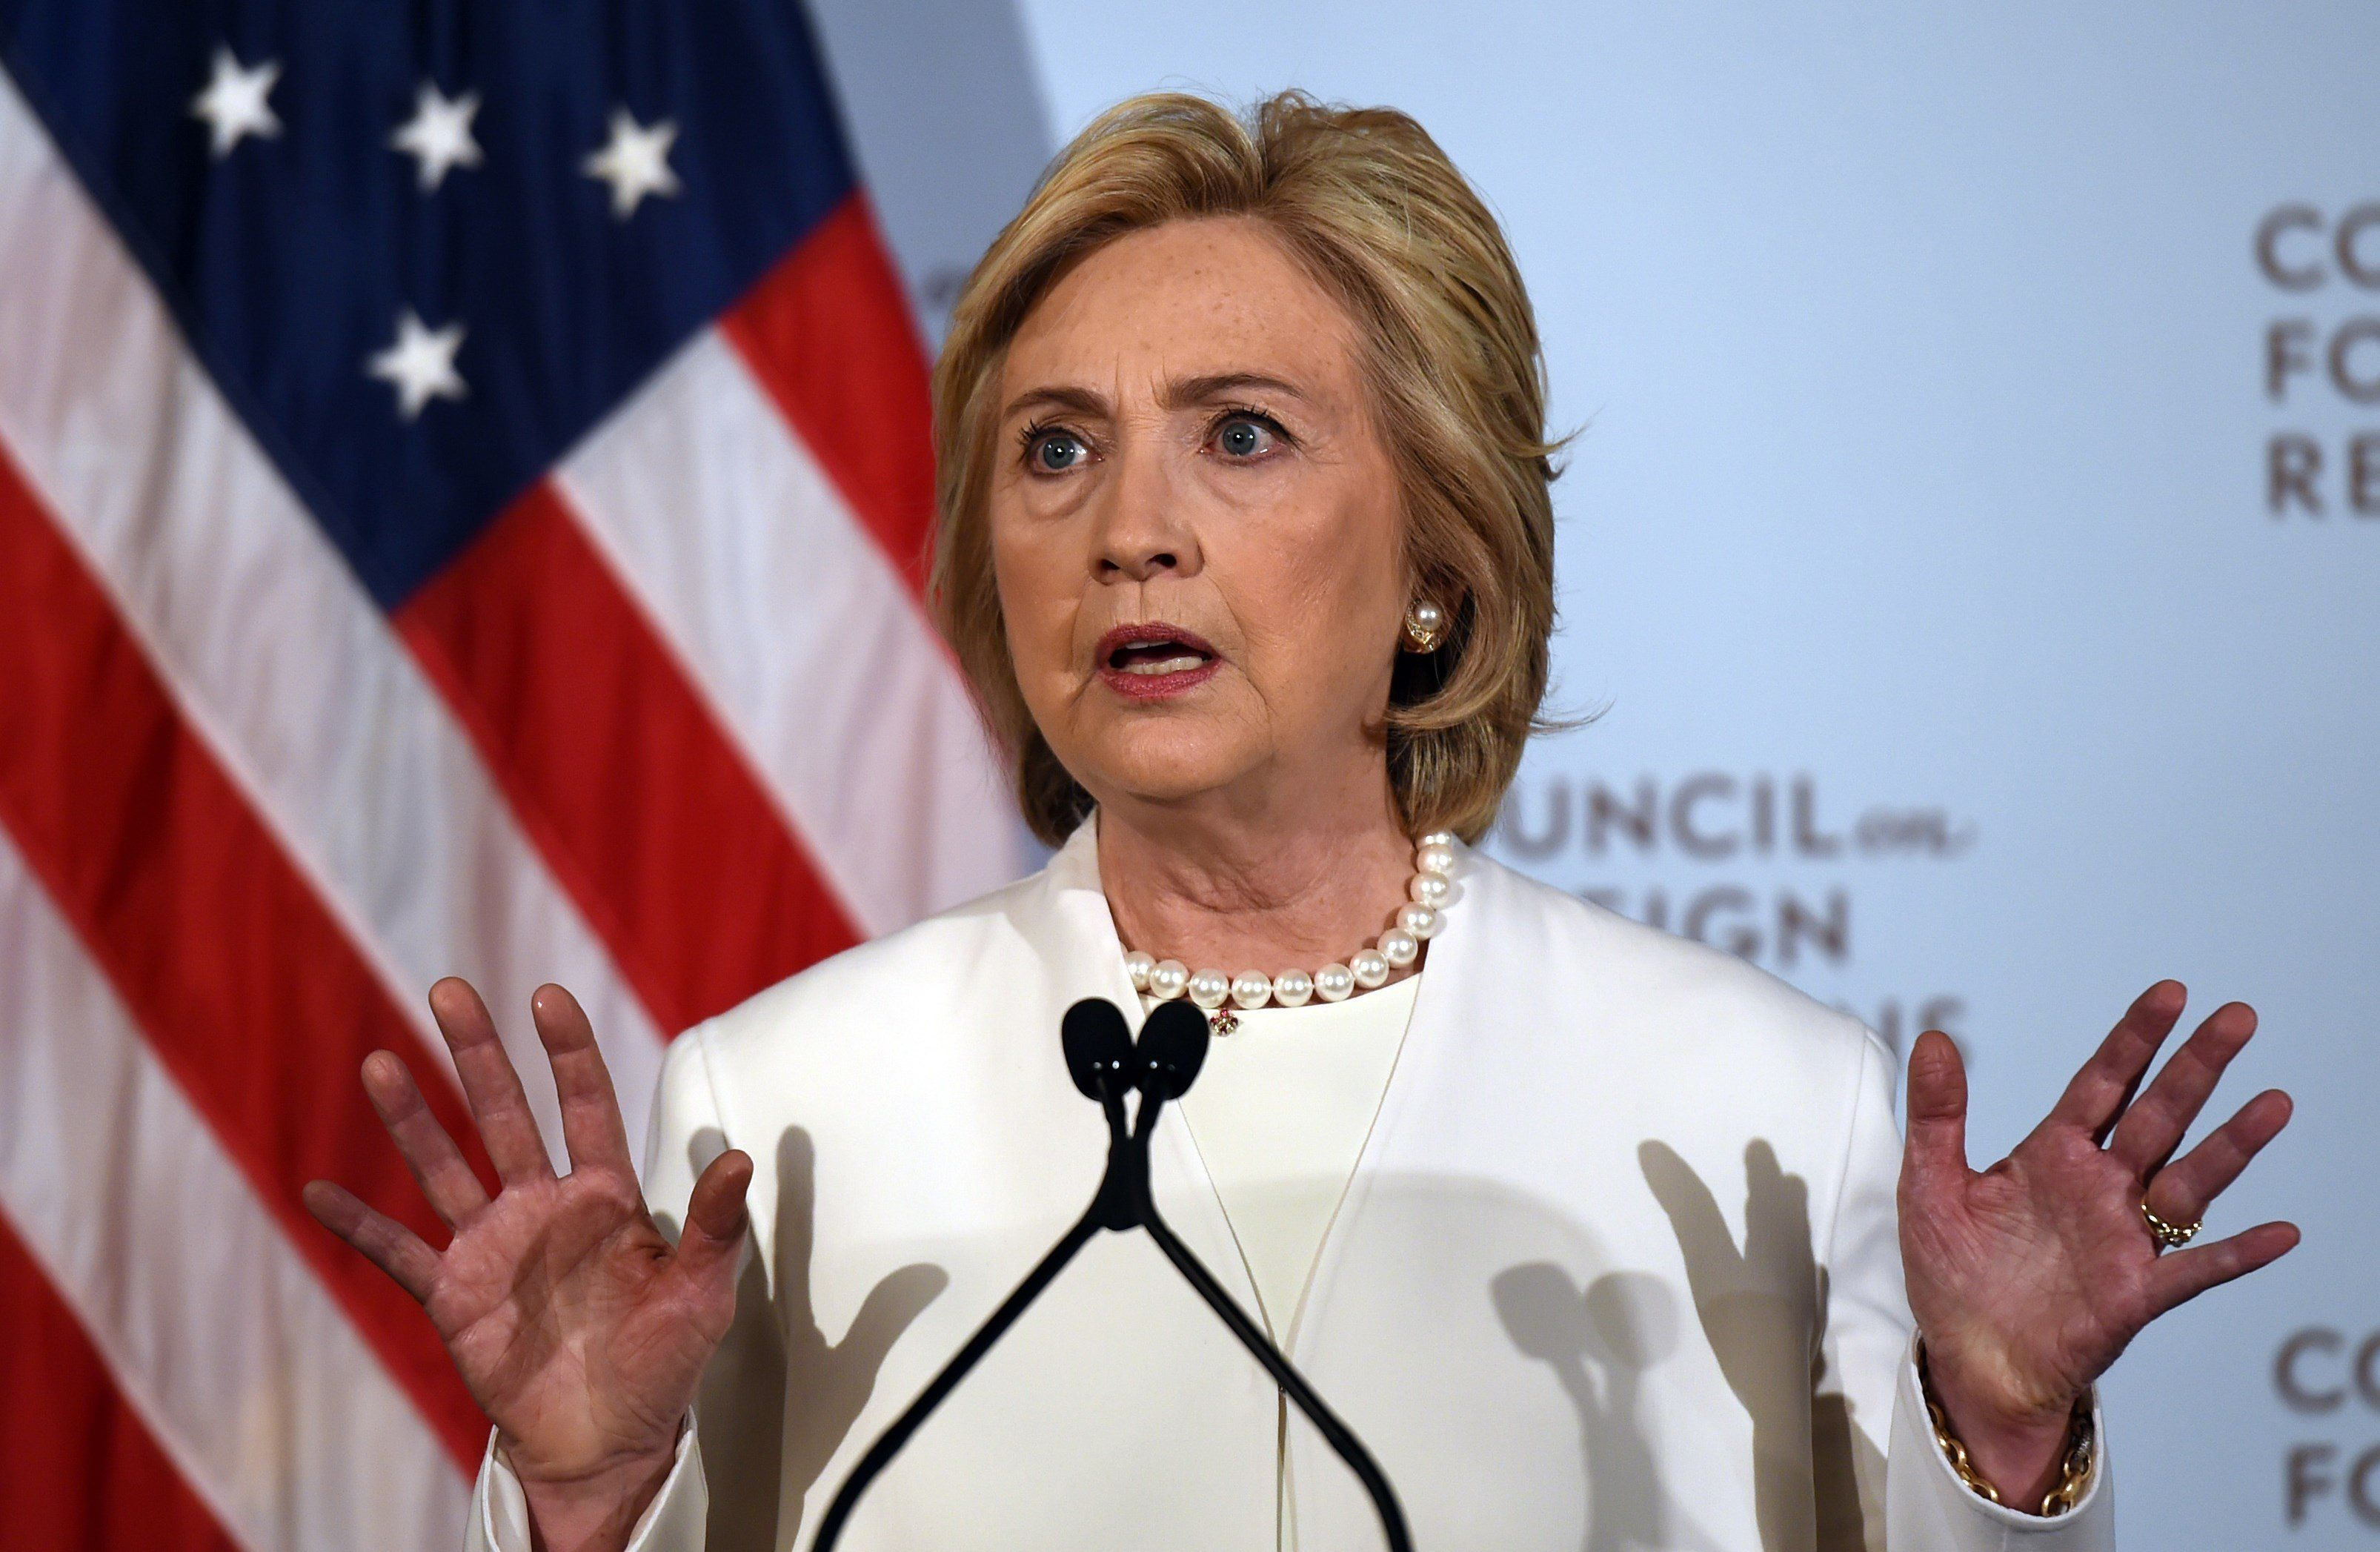 Democratic presidential hopeful Hillary Clinton delivers a national security address at the Council on Foreign Relations in New York, November 19, 2015 on her strategy for defeating the Islamic State group in the wake of the Paris attacks.   AFP PHOTO / DON EMMERT        (Photo credit should read DON EMMERT/AFP/Getty Images)